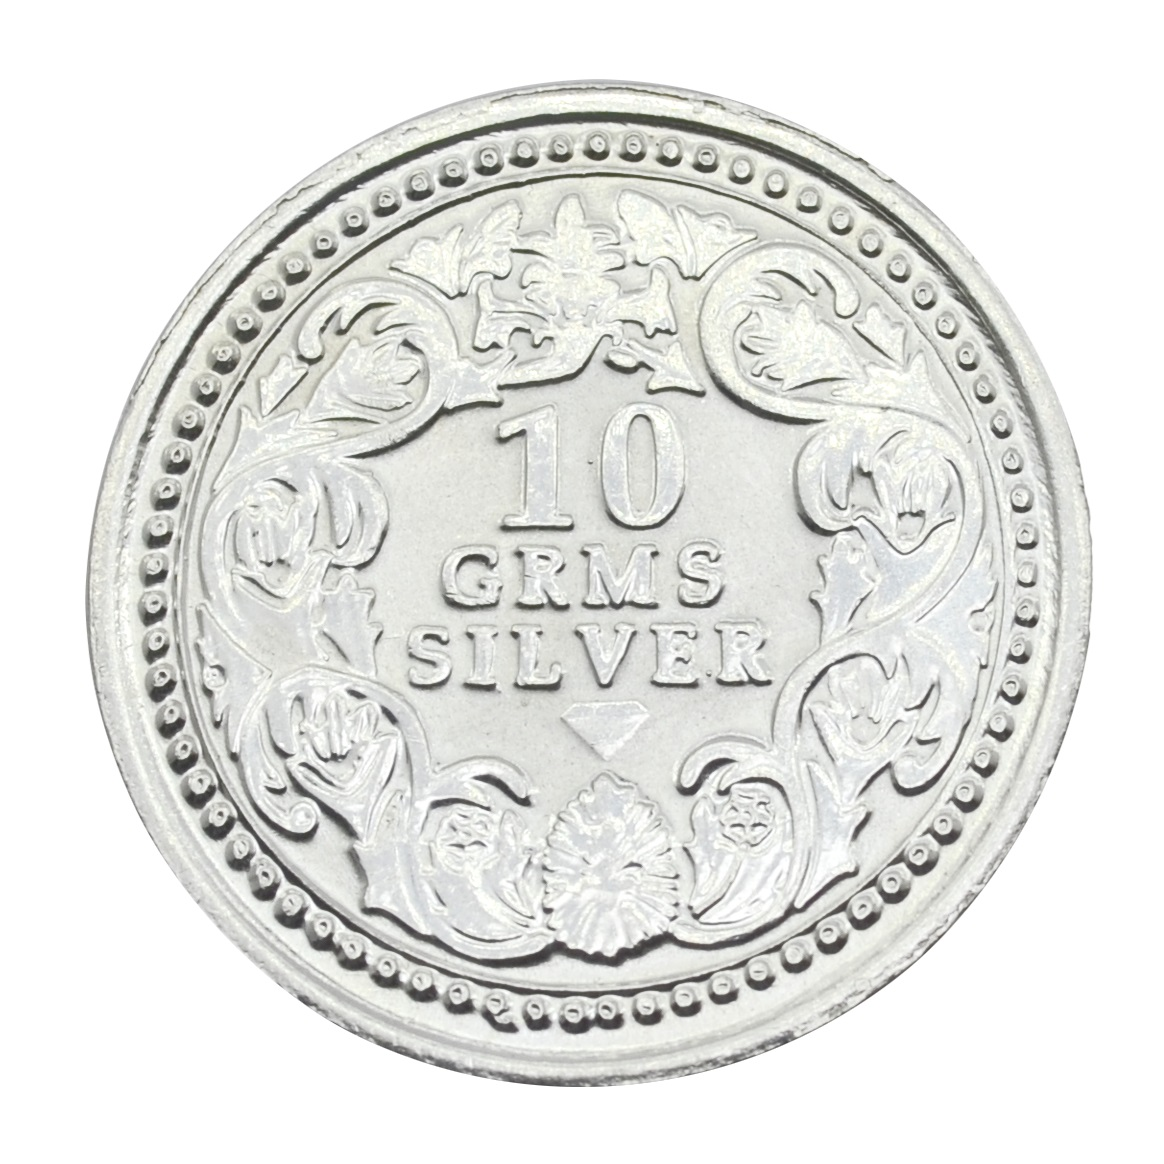 10 Grams, 999 Pure Silver Coin